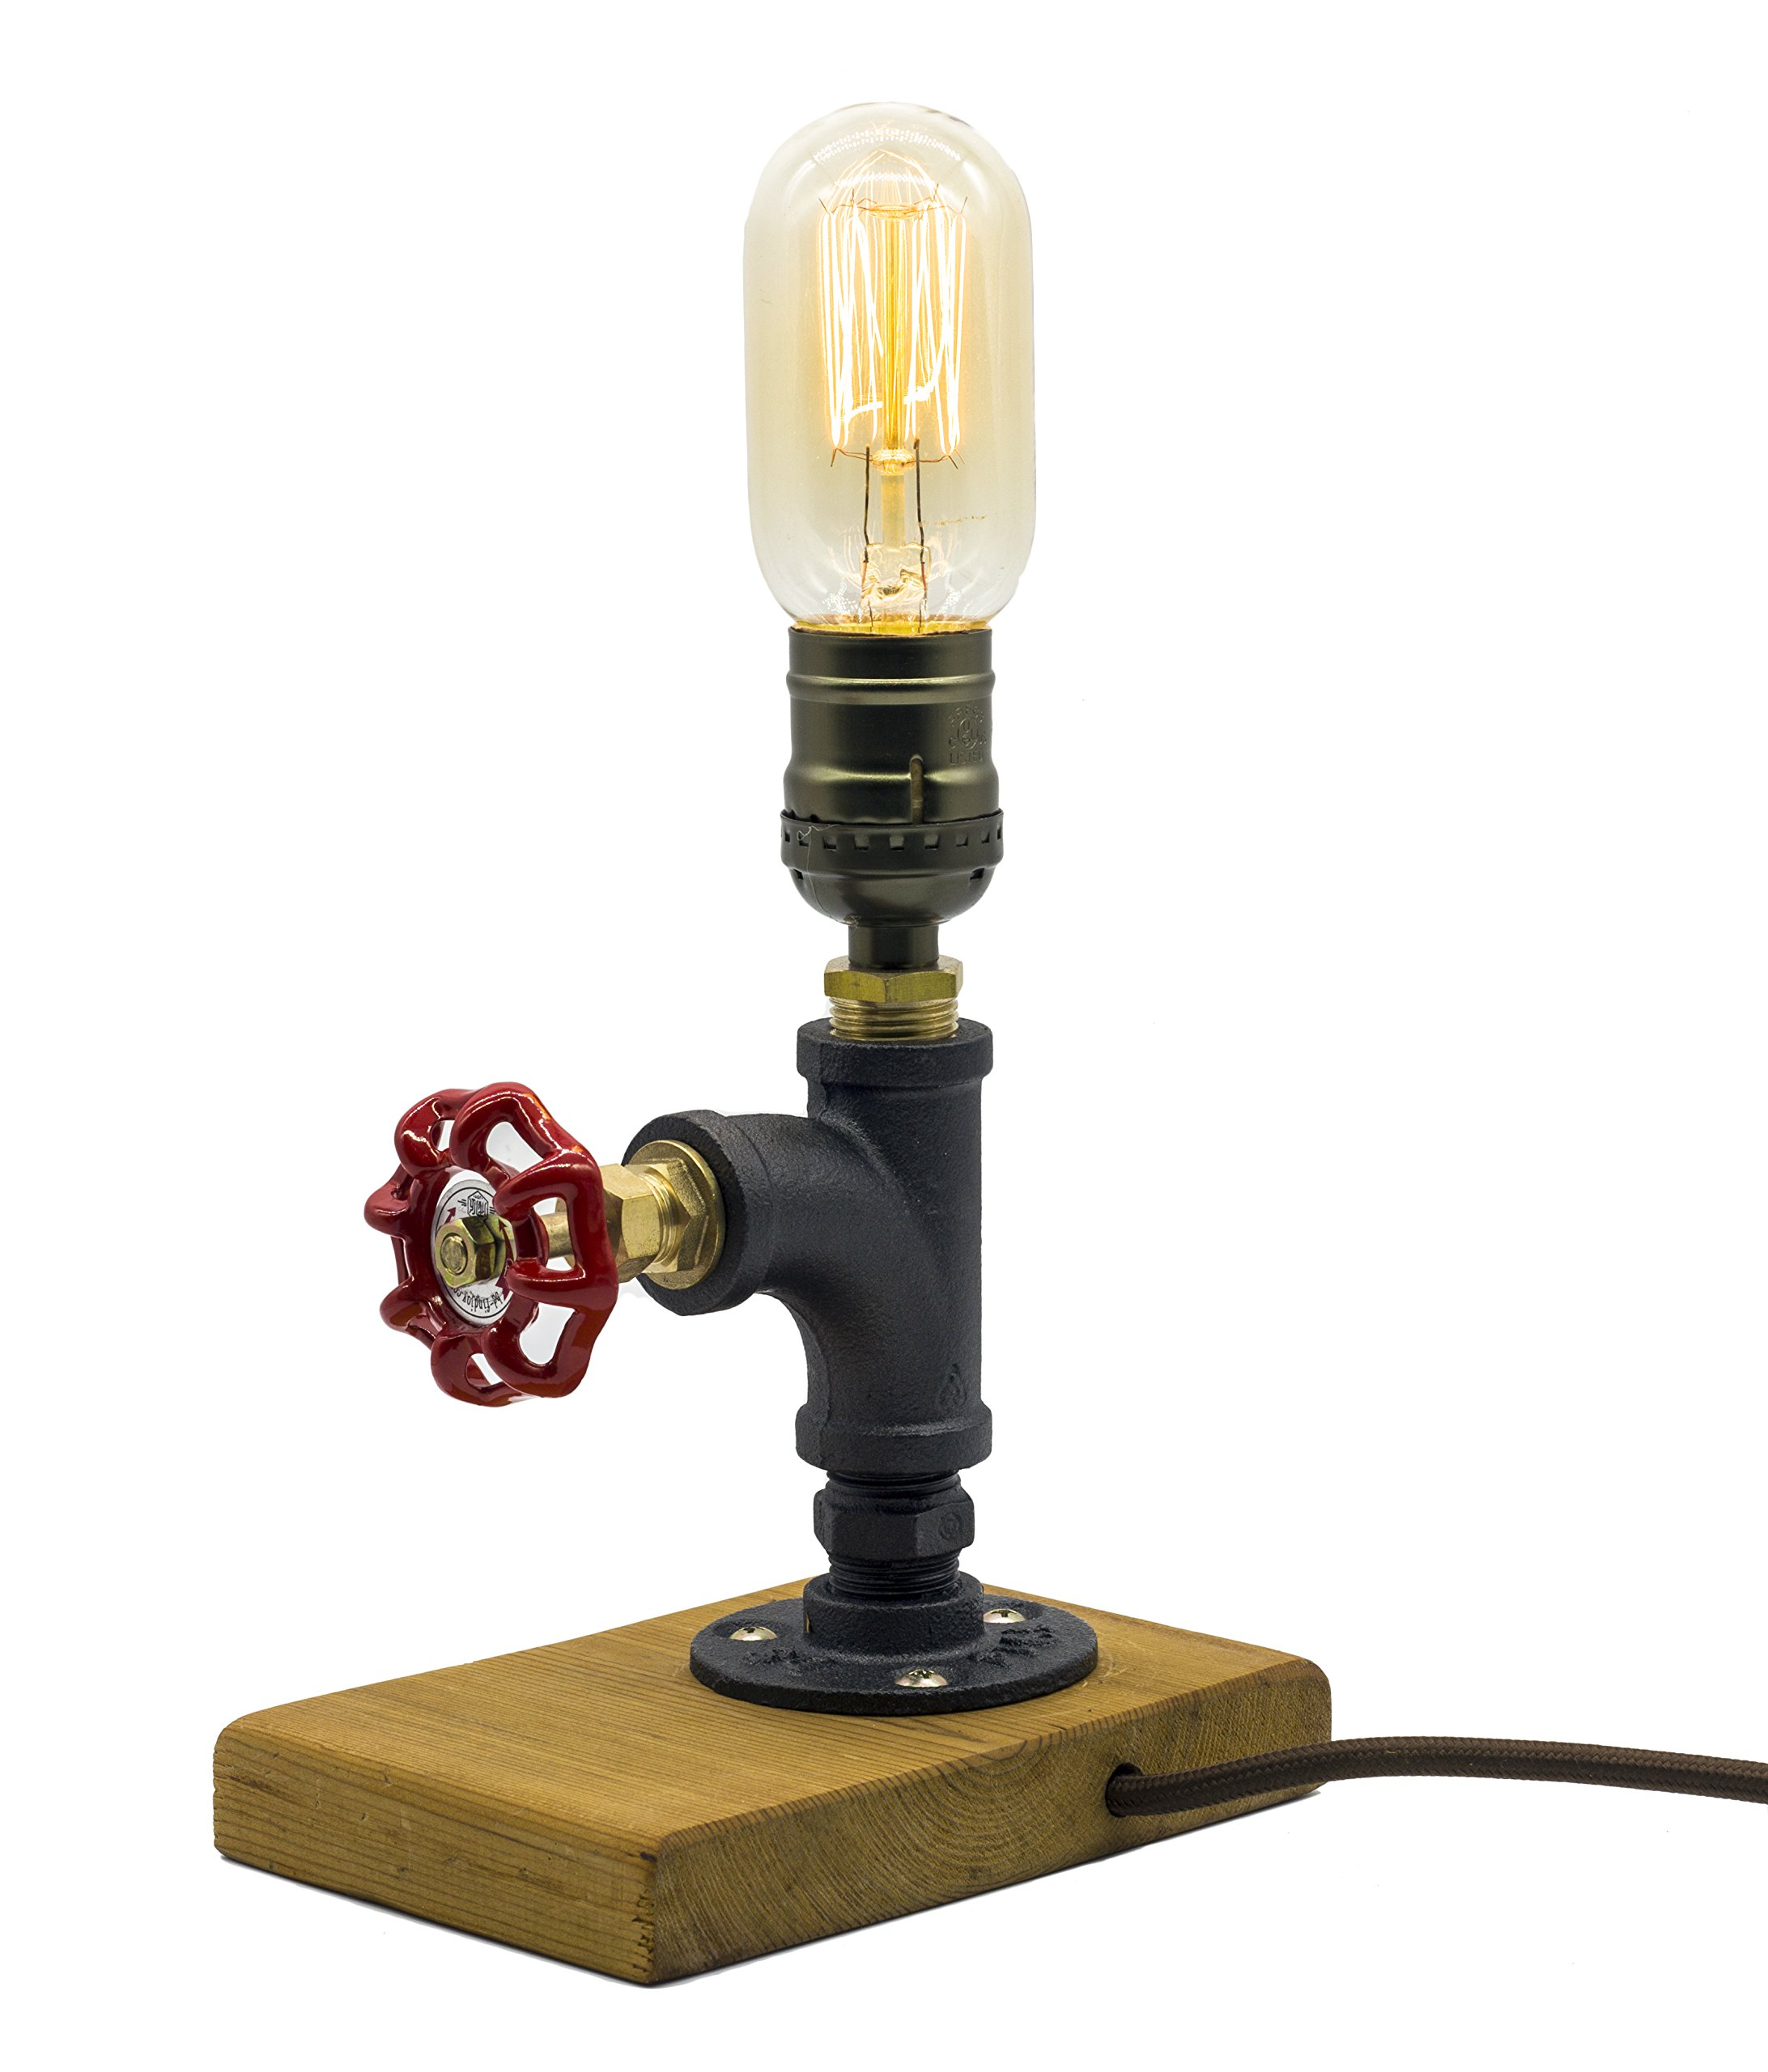 Steam punk Lamp with Dimmer, Dimmable Loft Style Industrial Vintage Antique Style Light, Wood Base with Iron Piping Desk Lamp, Y-Nut''The Professor'' Retro Desk Lamp LL-013